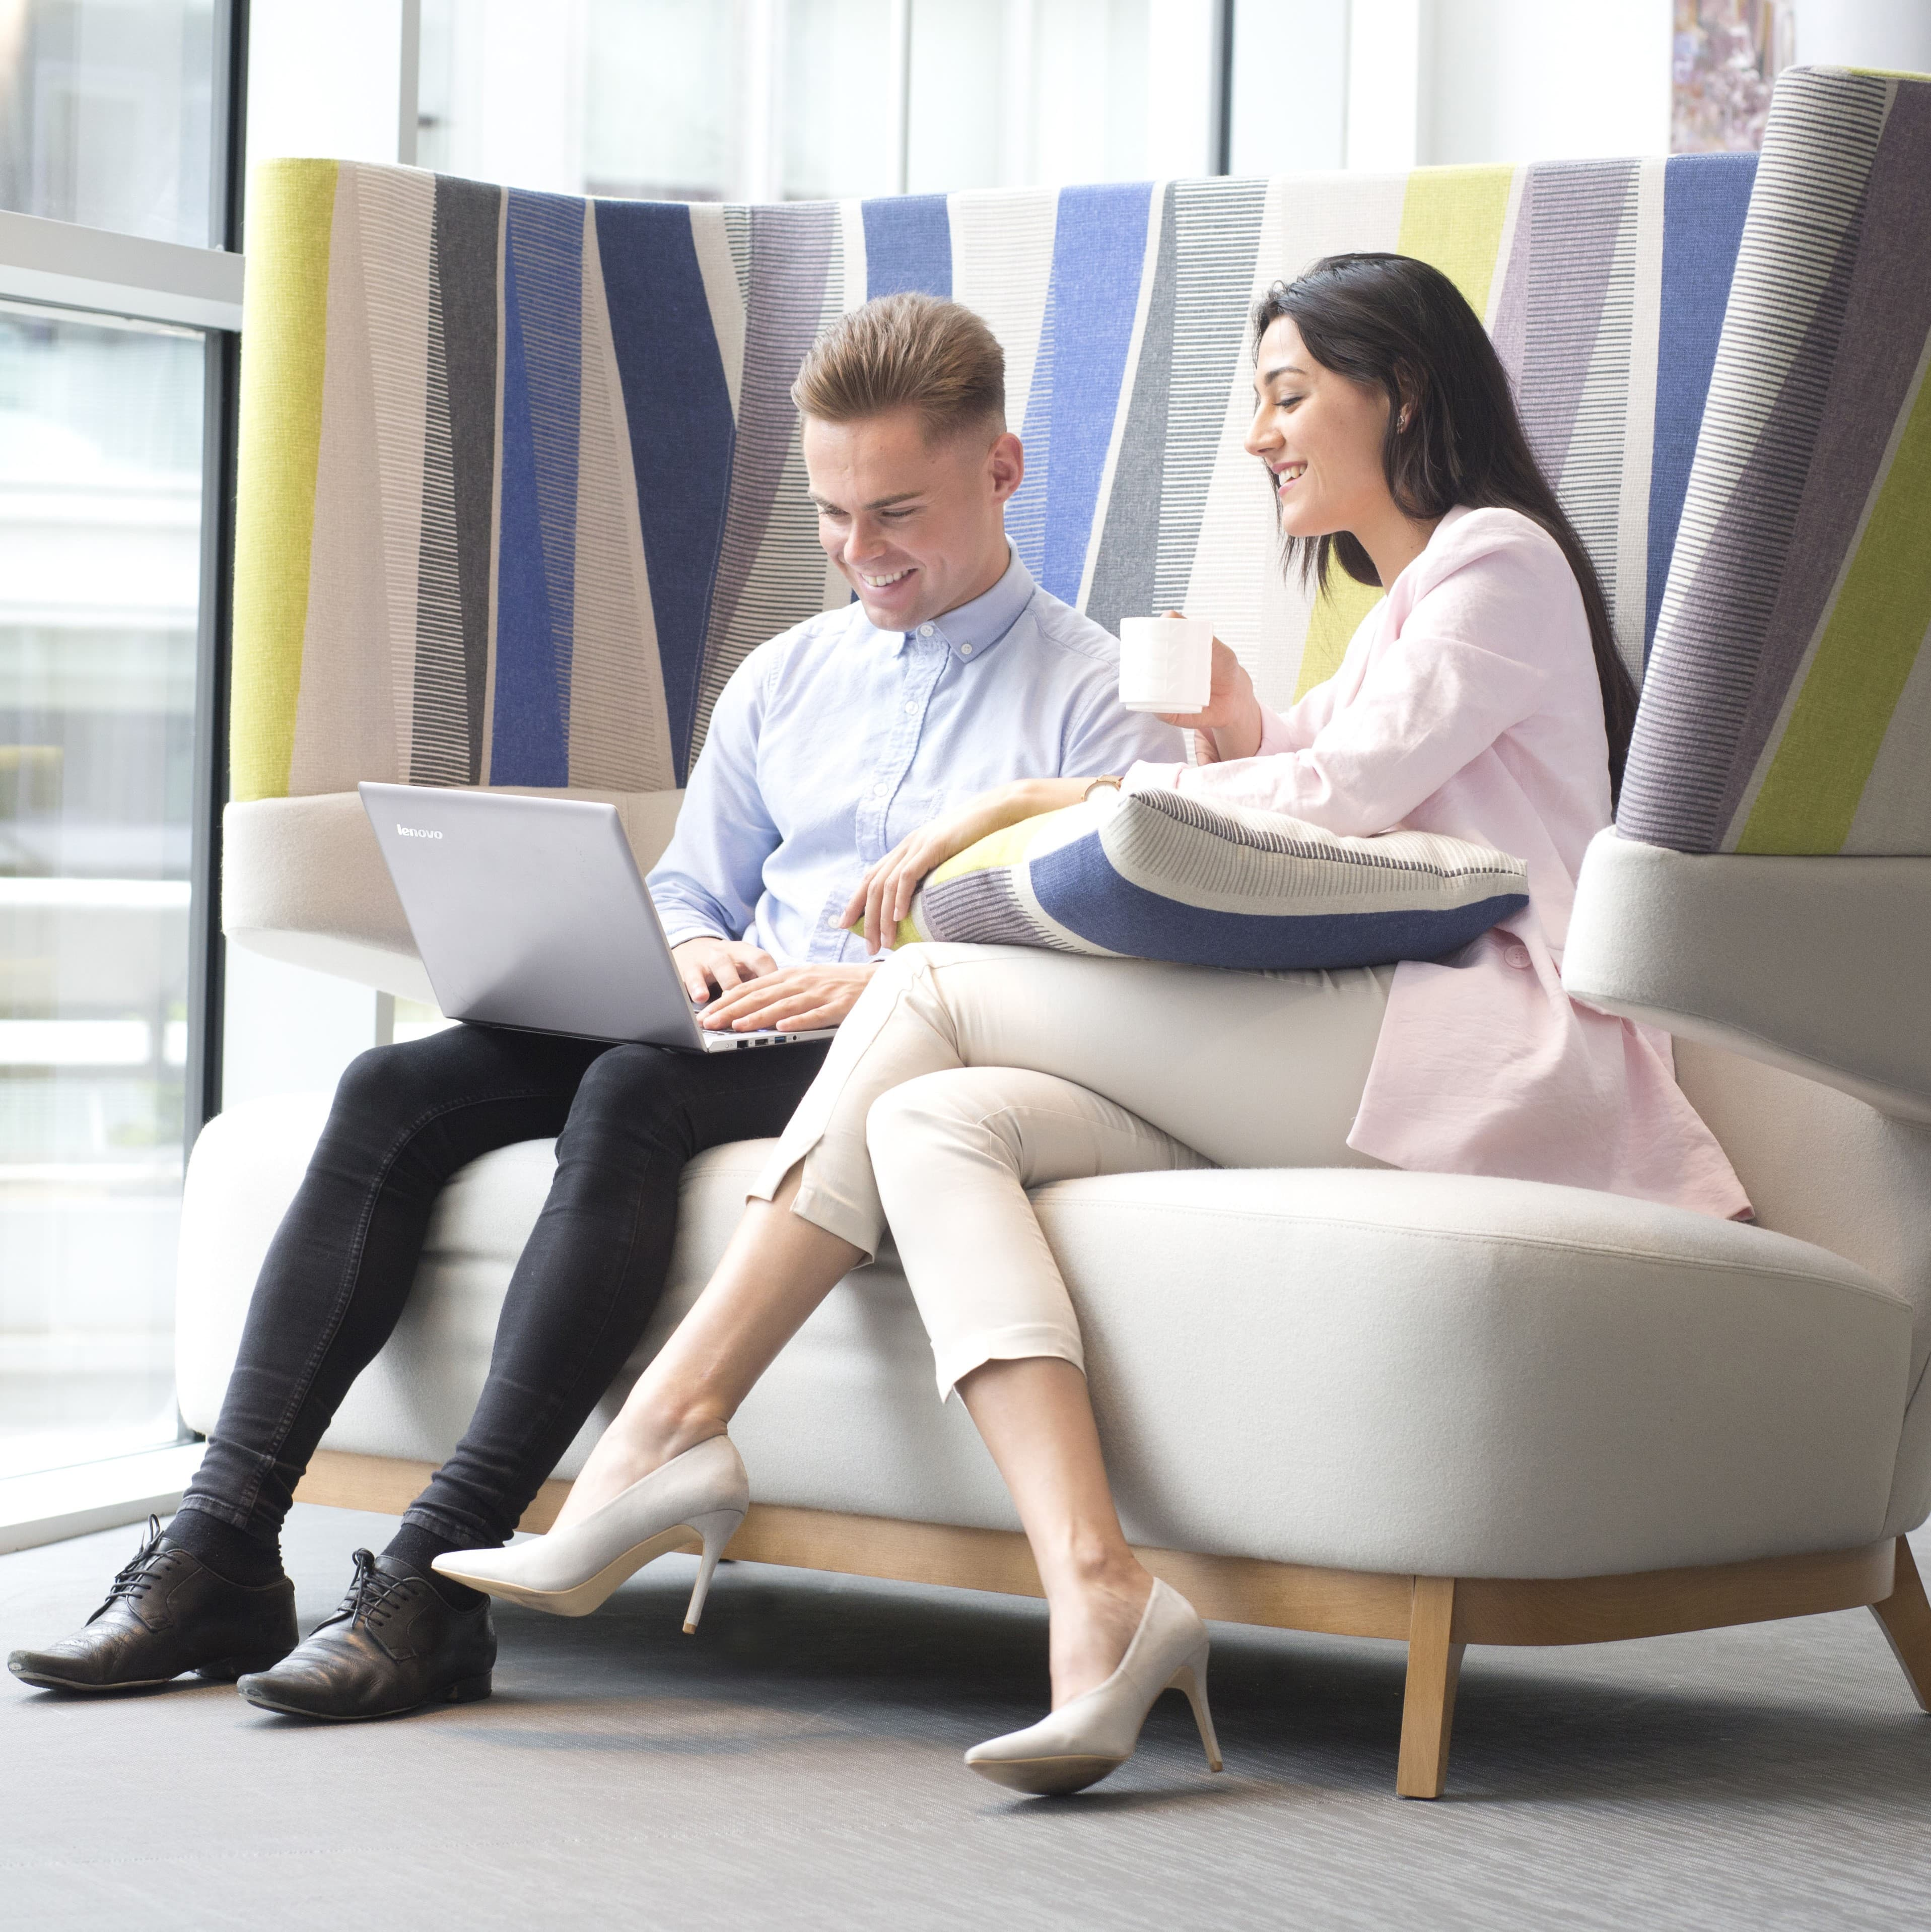 Finding the Goldilocks Point for collaborative workplace design